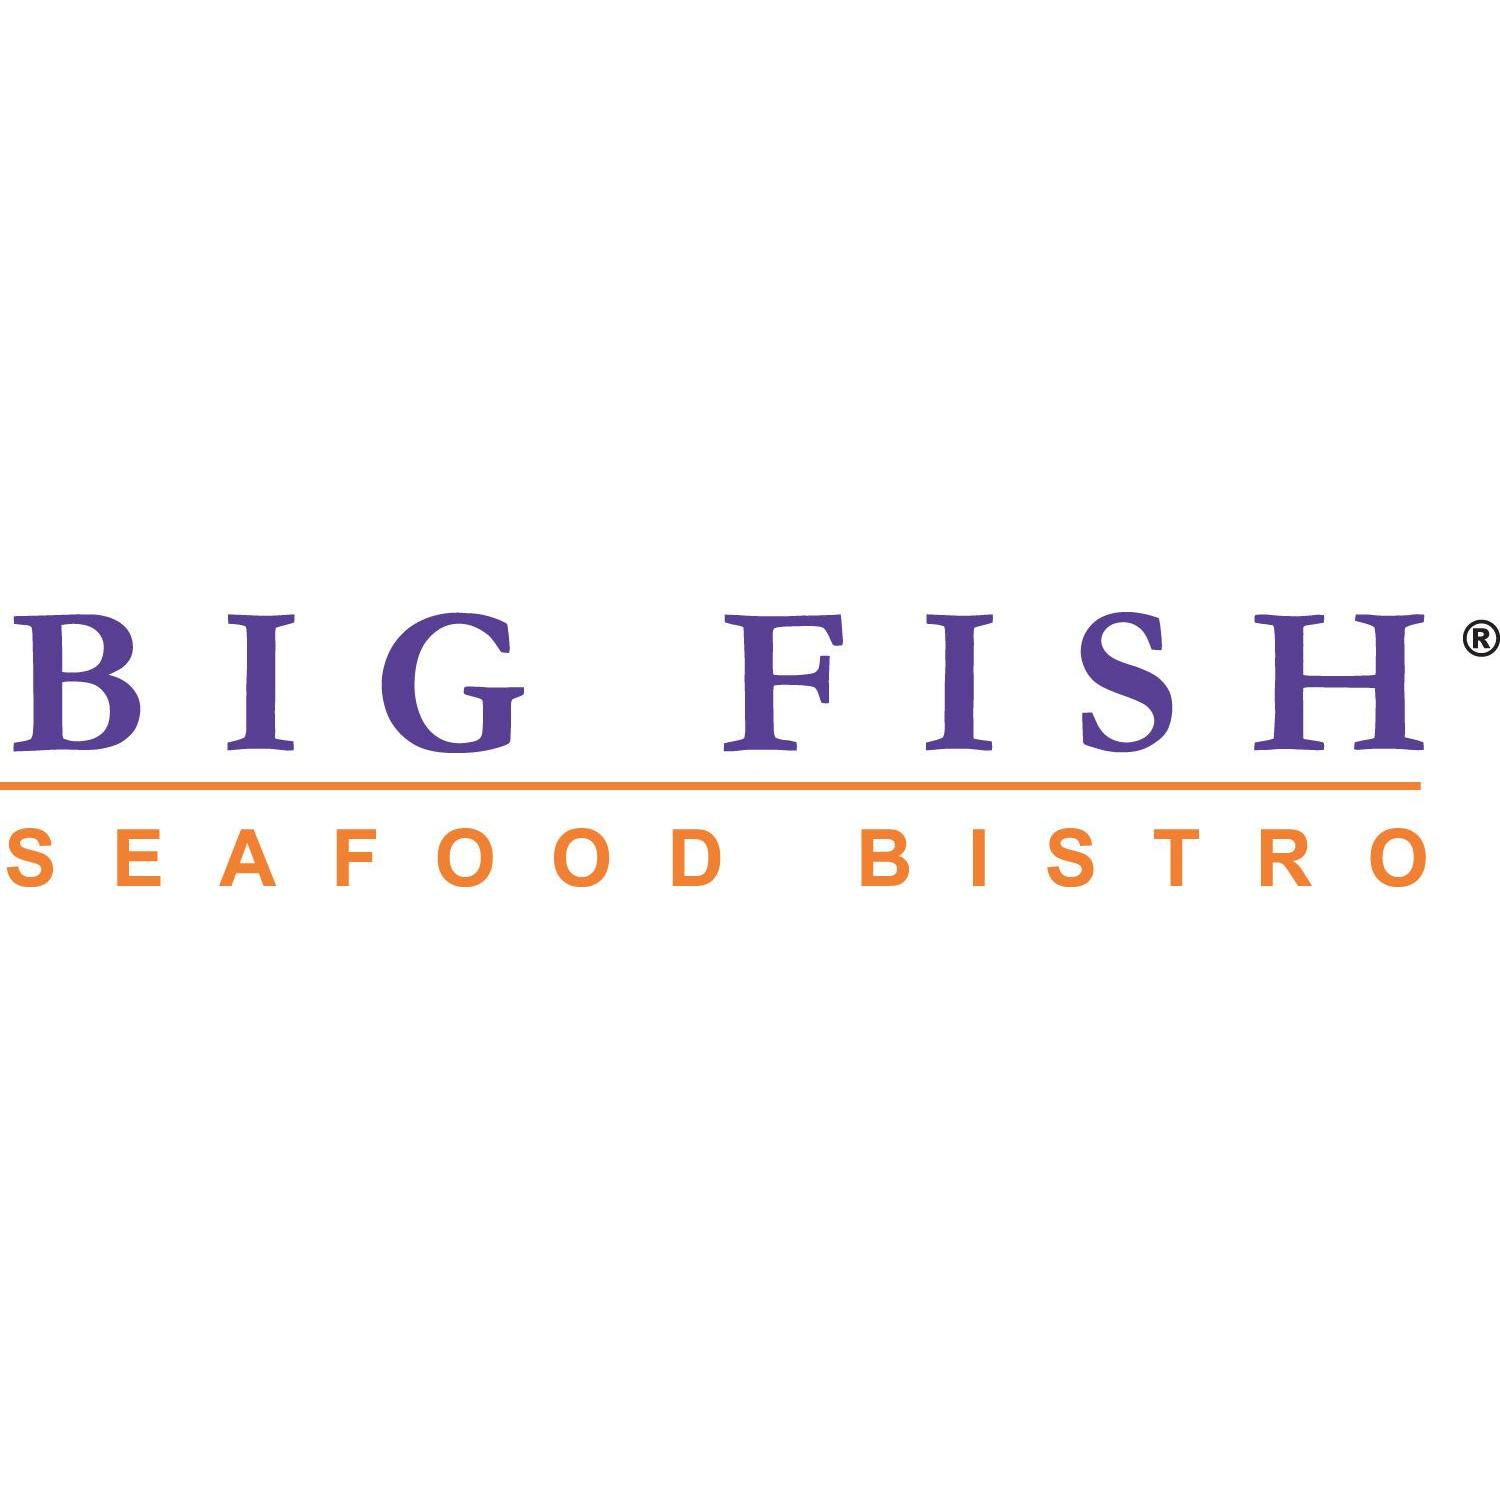 Big fish seafood bistro 700 town center drive dearborn mi for Big fish dearborn mi